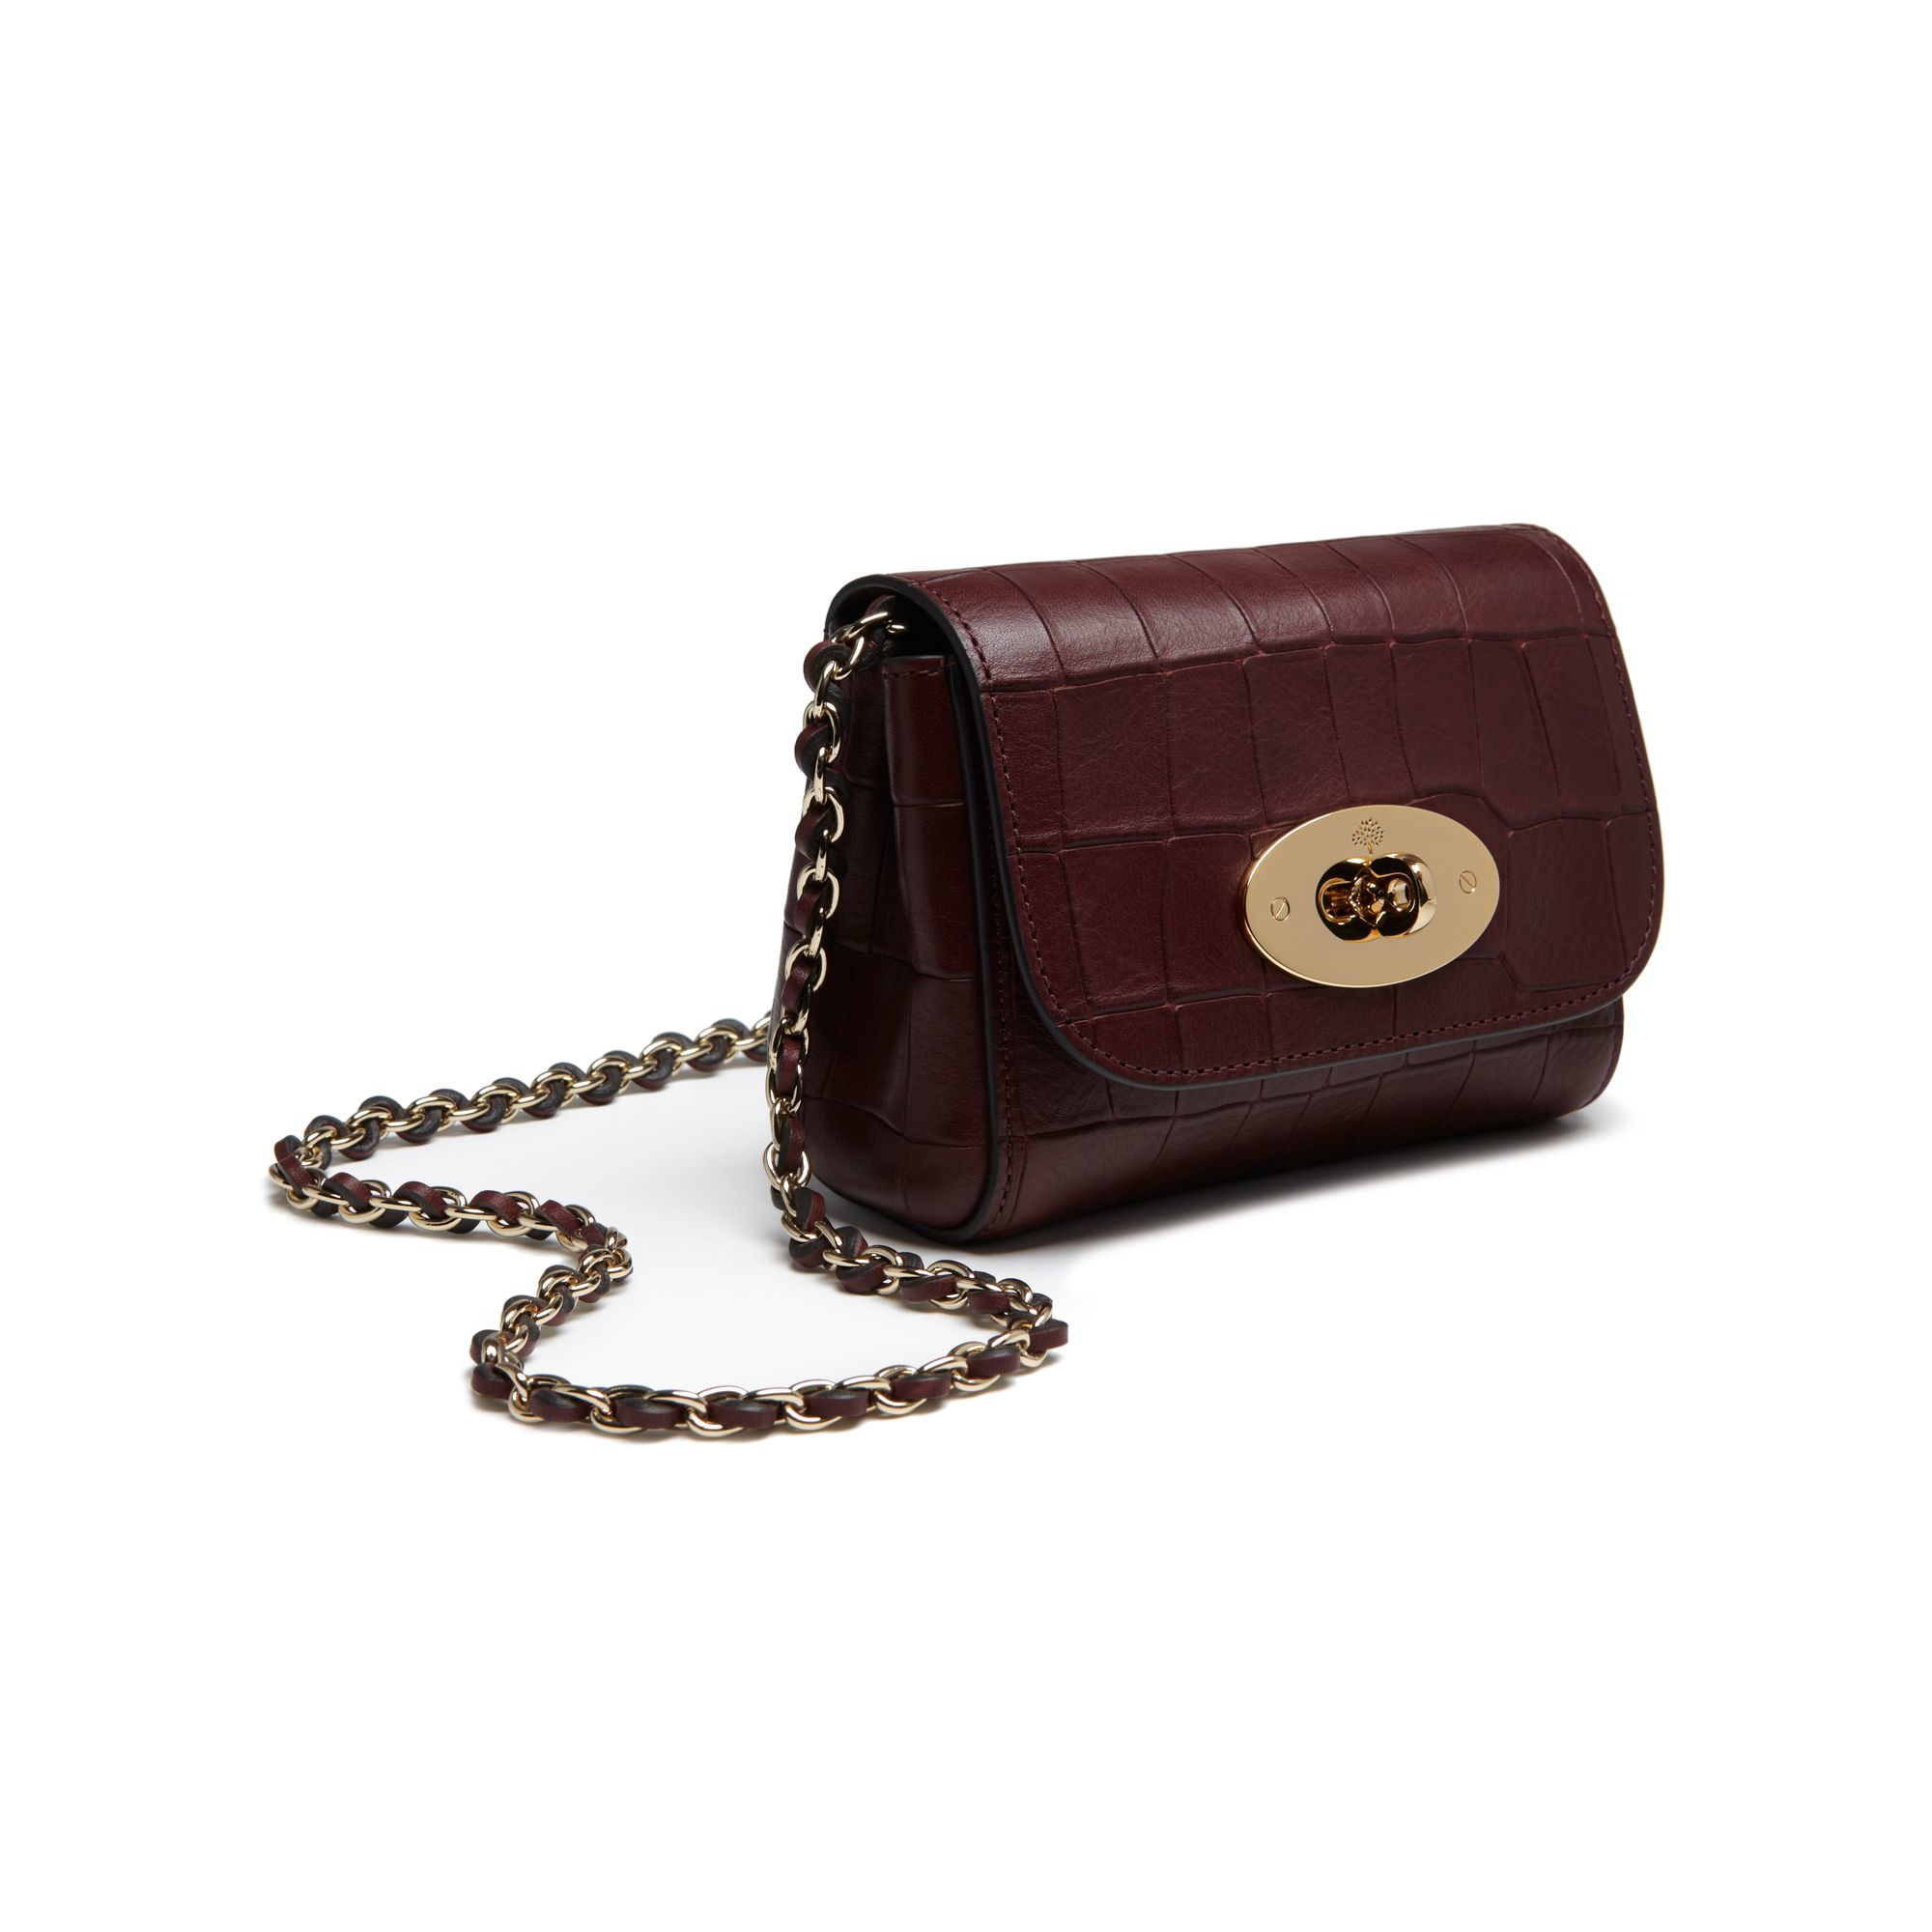 09a5131034c0 ... coupon code for mulberry mini lily lyst 88aaa b4e49